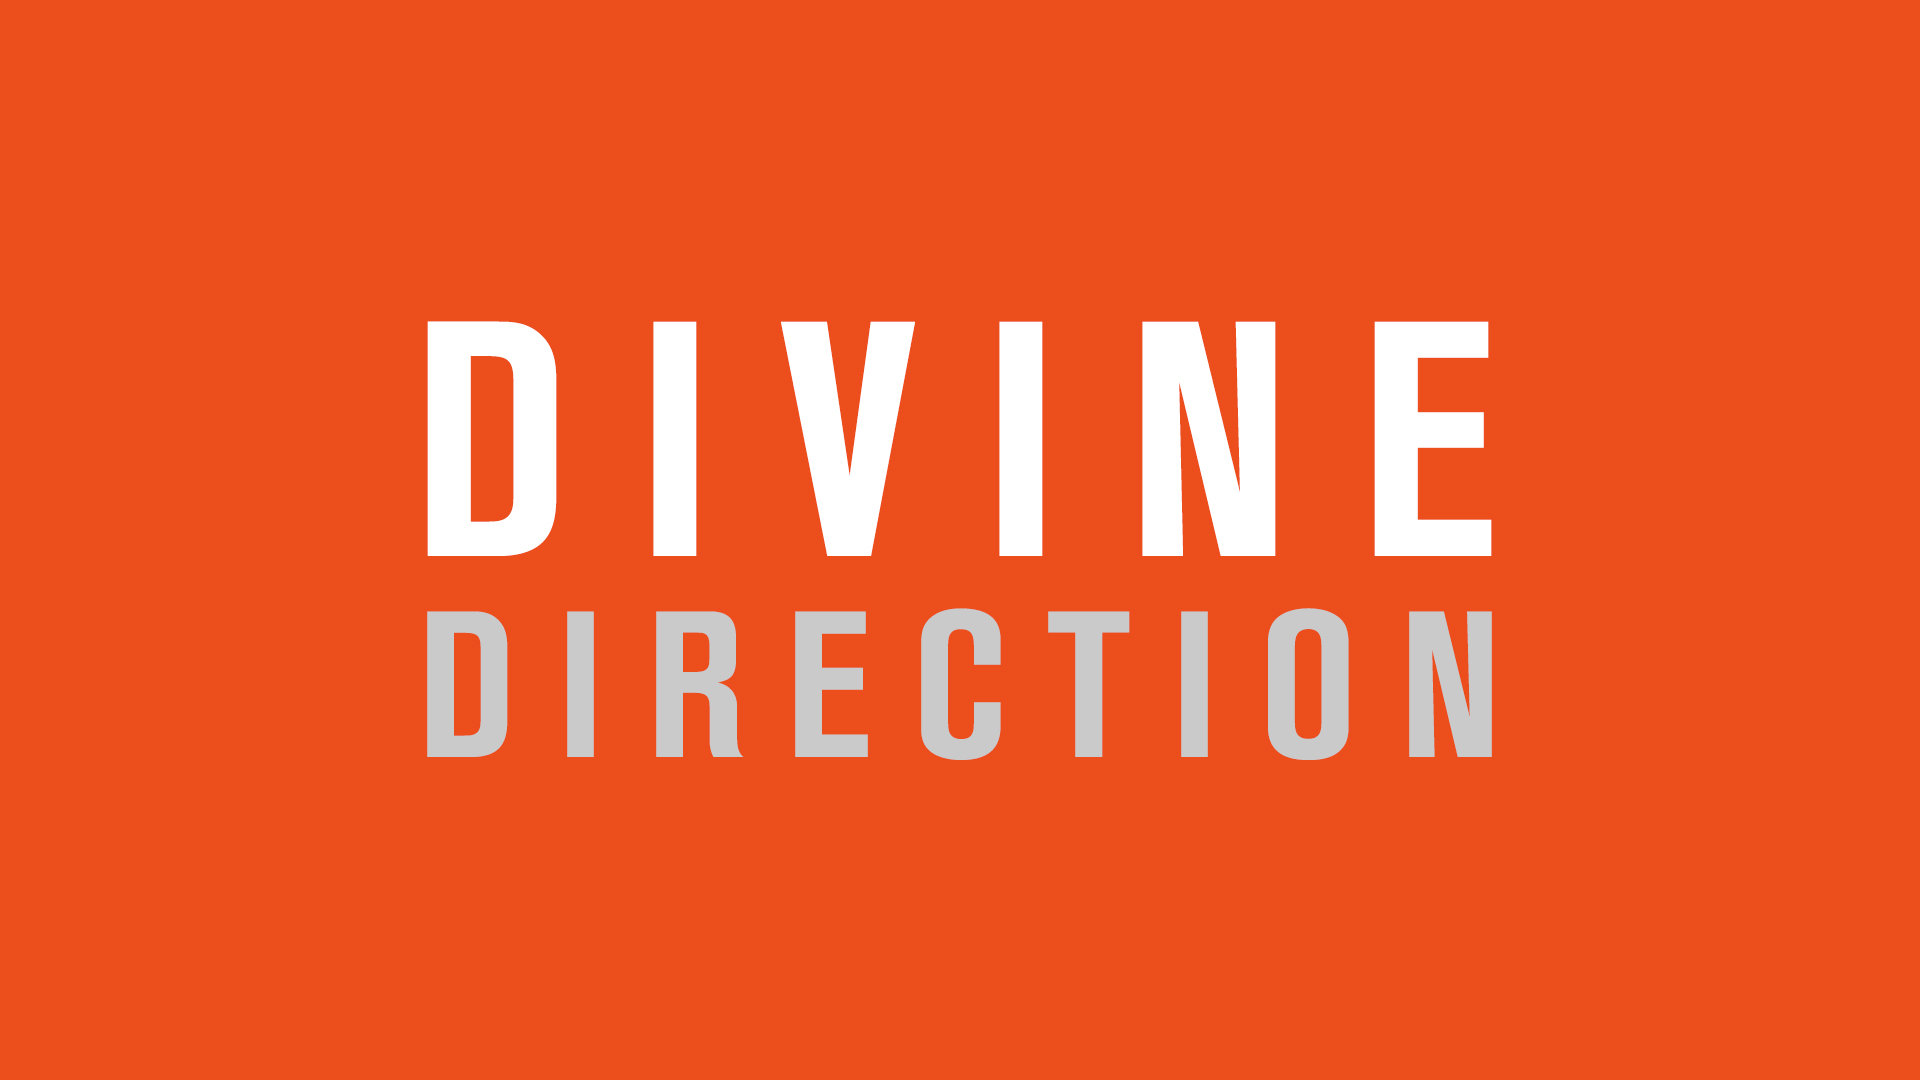 Divine Direction Logo.jpg